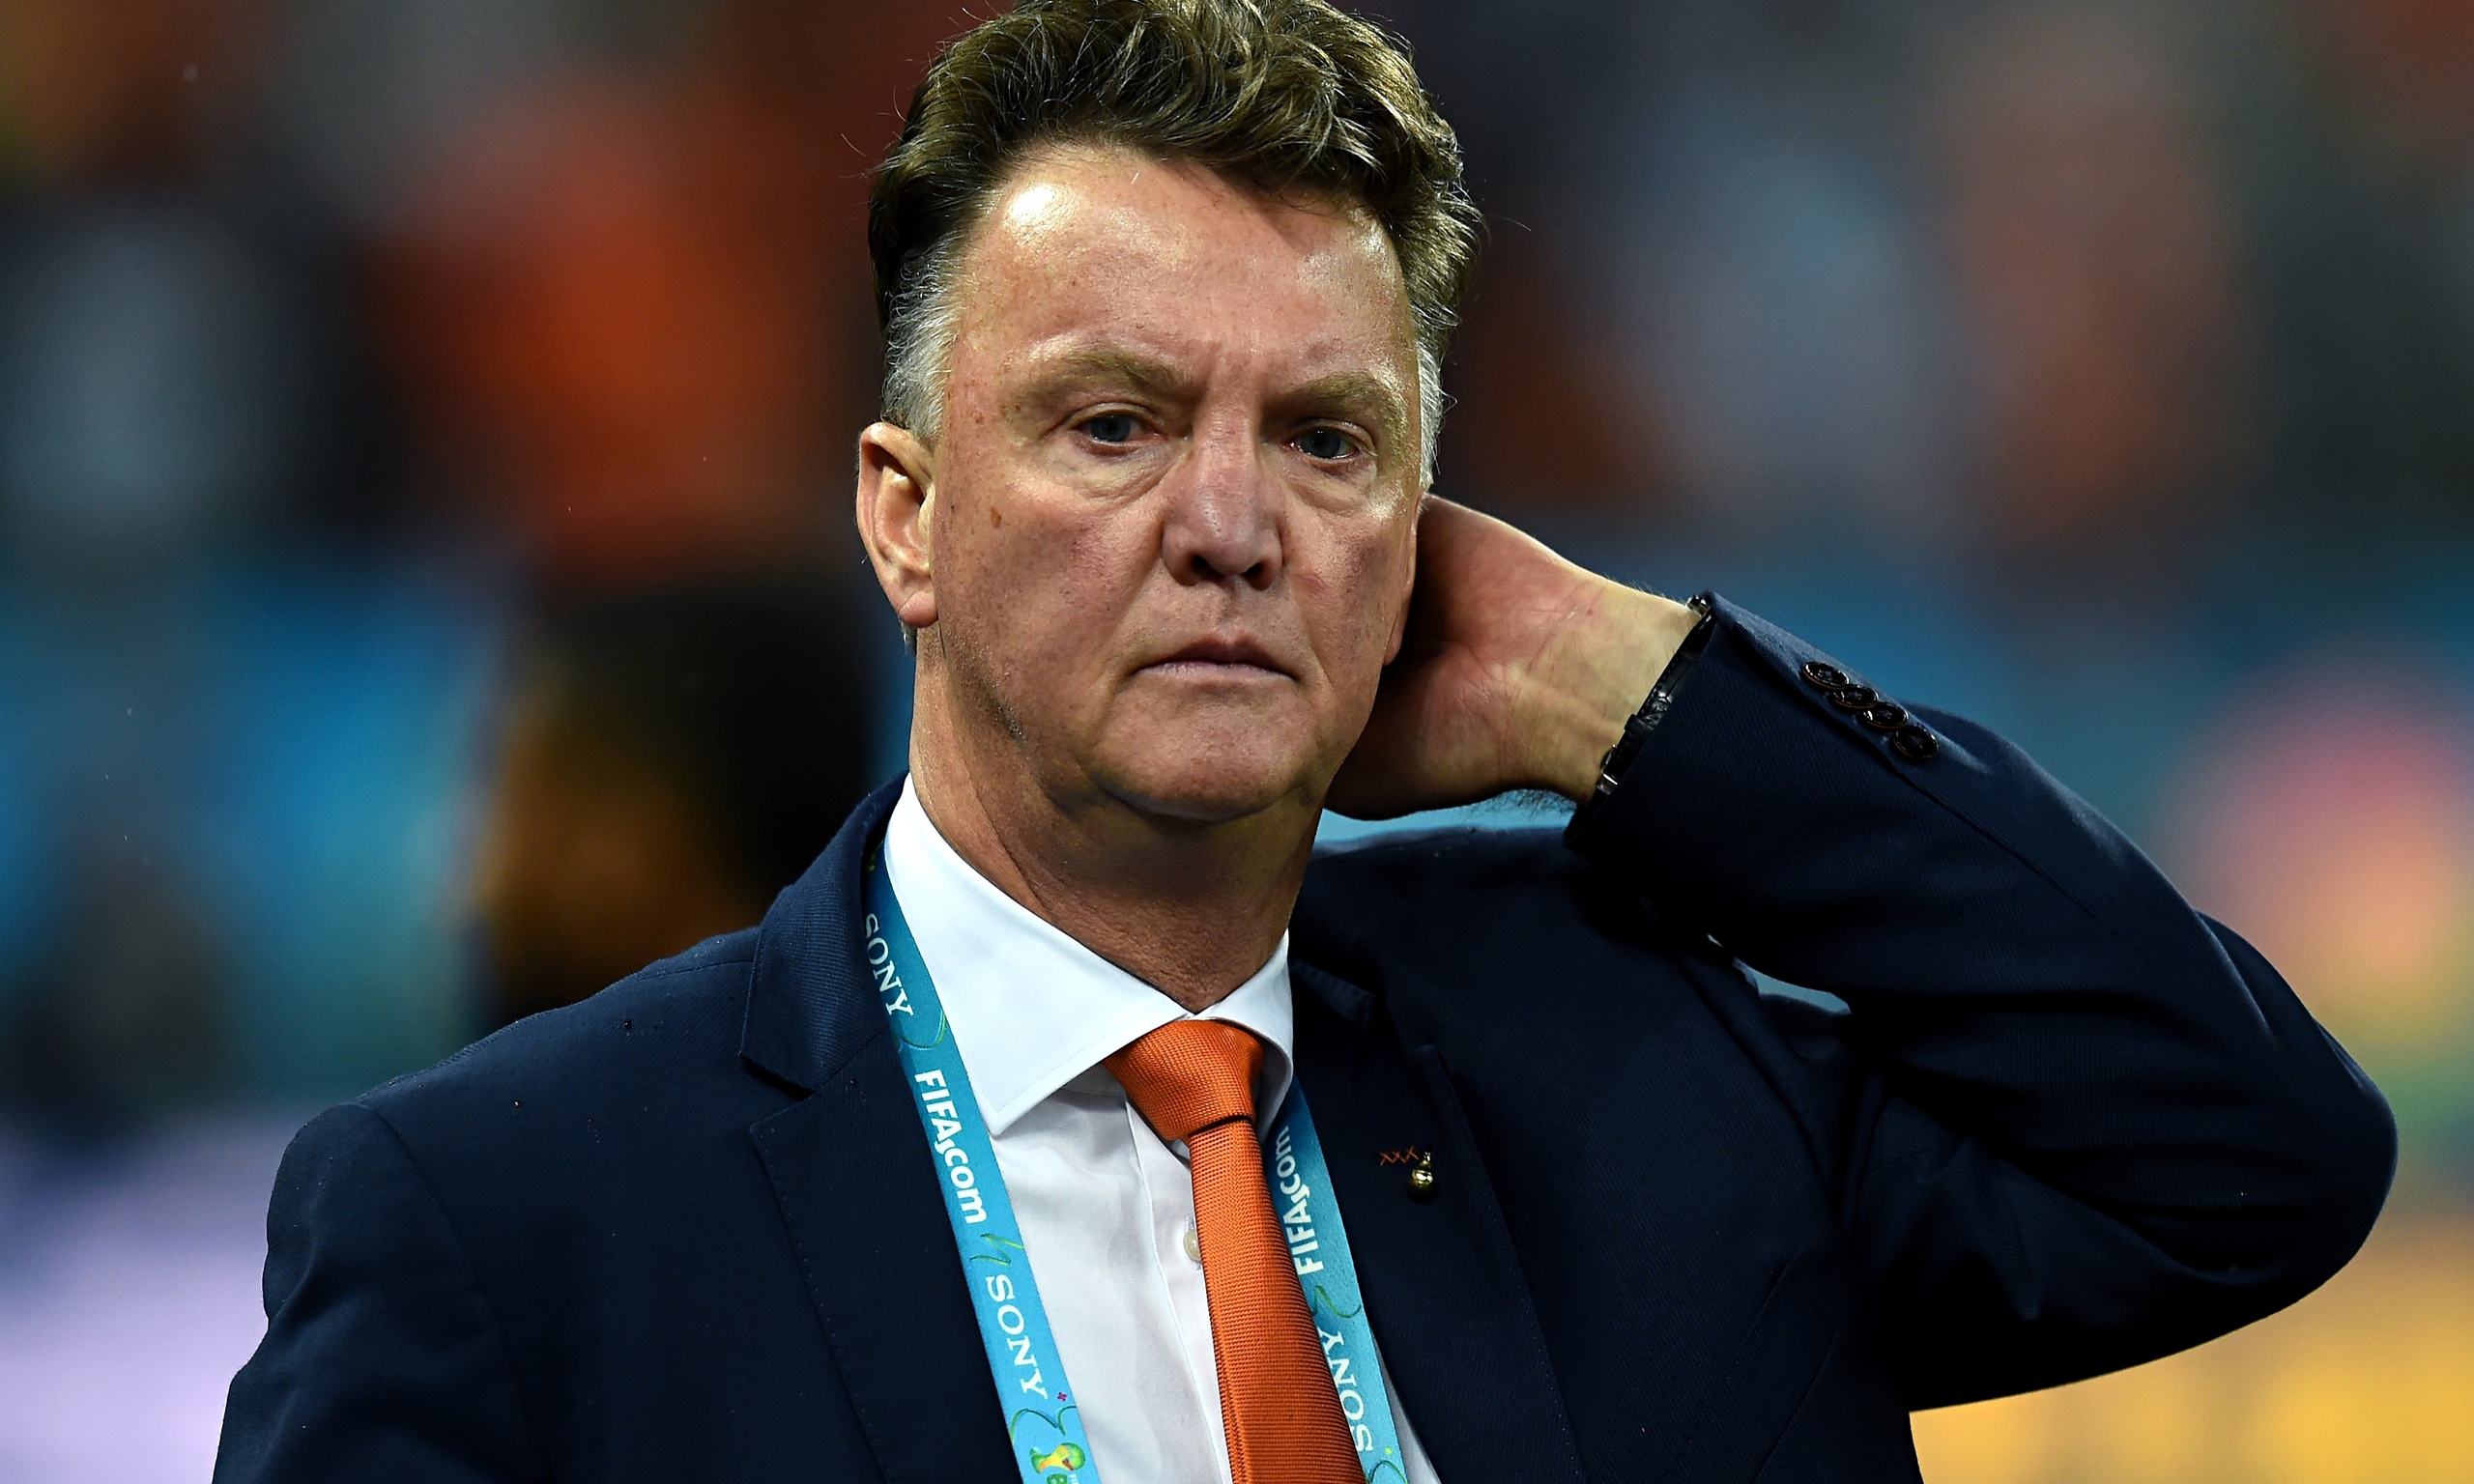 Louis van Gaal justification